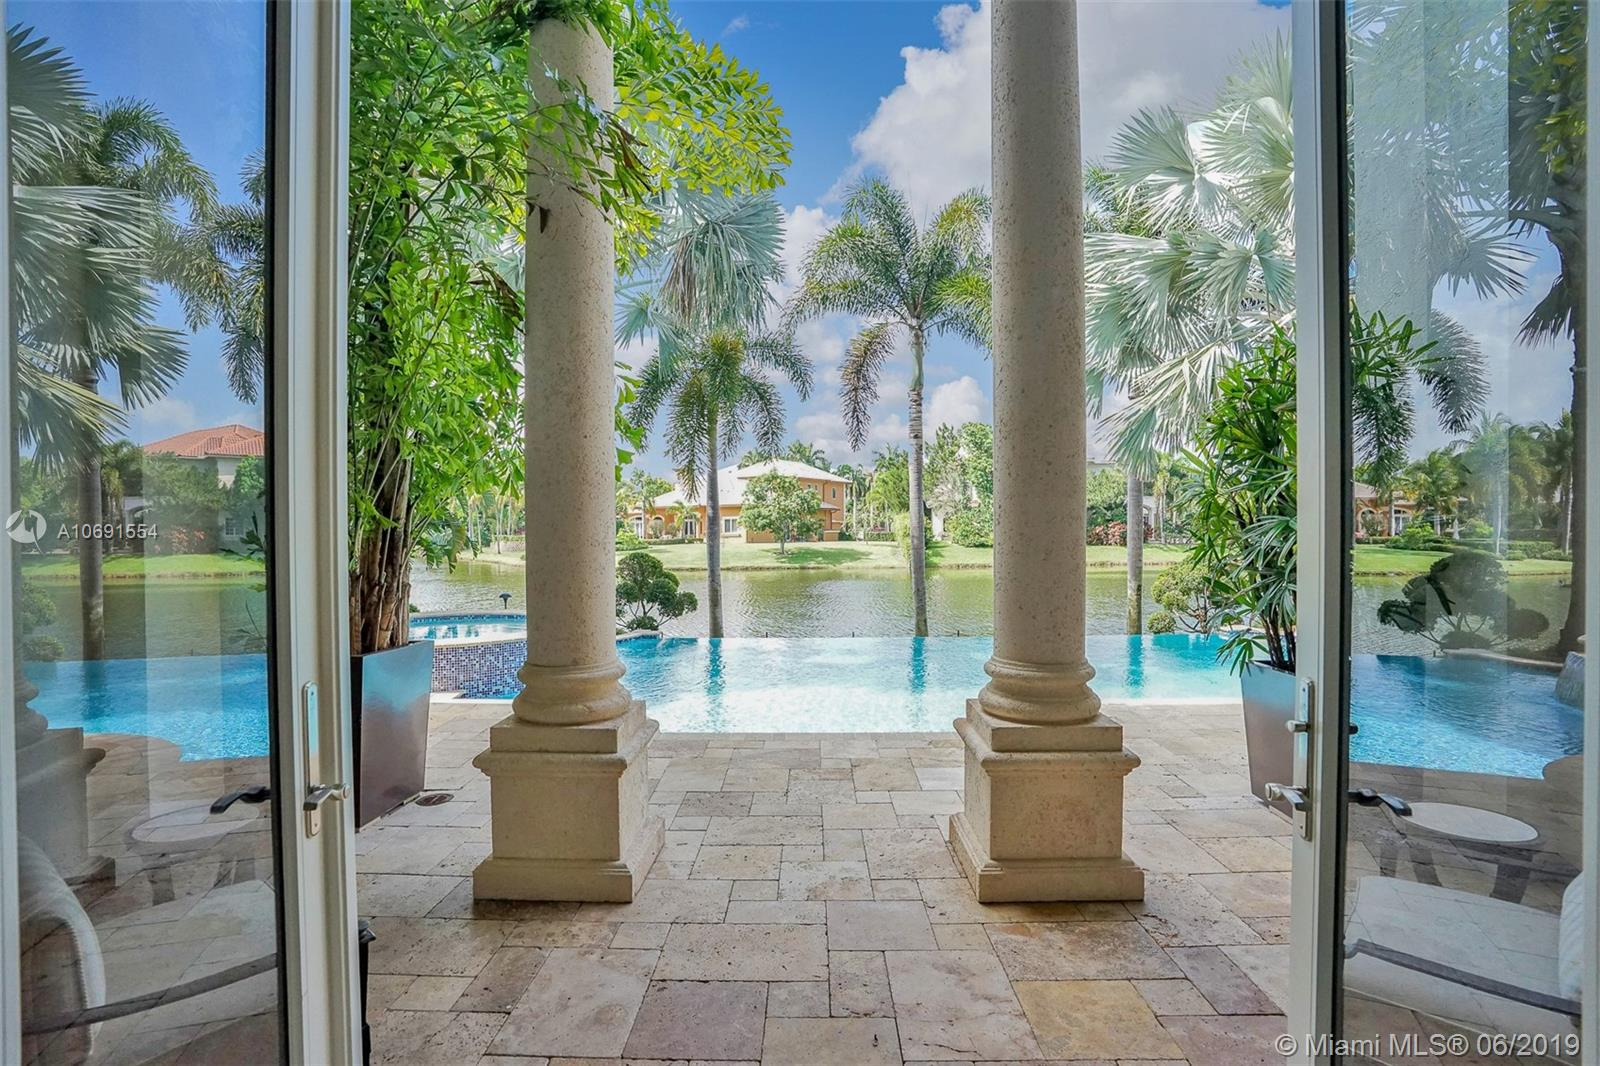 436 Sweet Bay Ave, Plantation, FL 33324